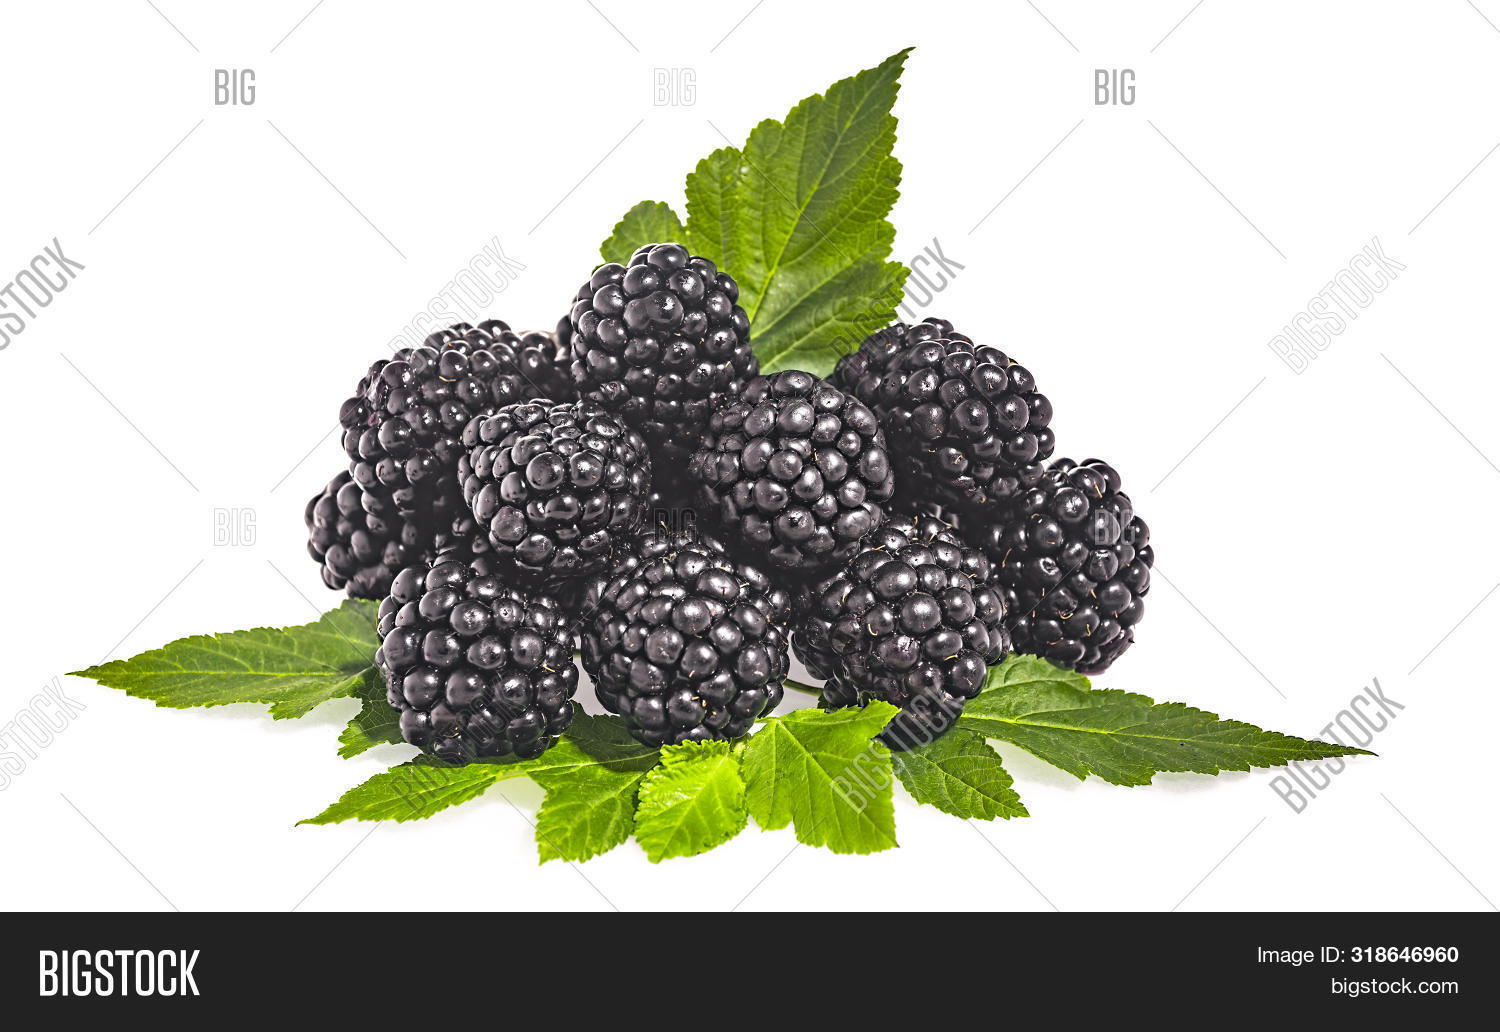 A pile of ripe blackberries isolated on a white background